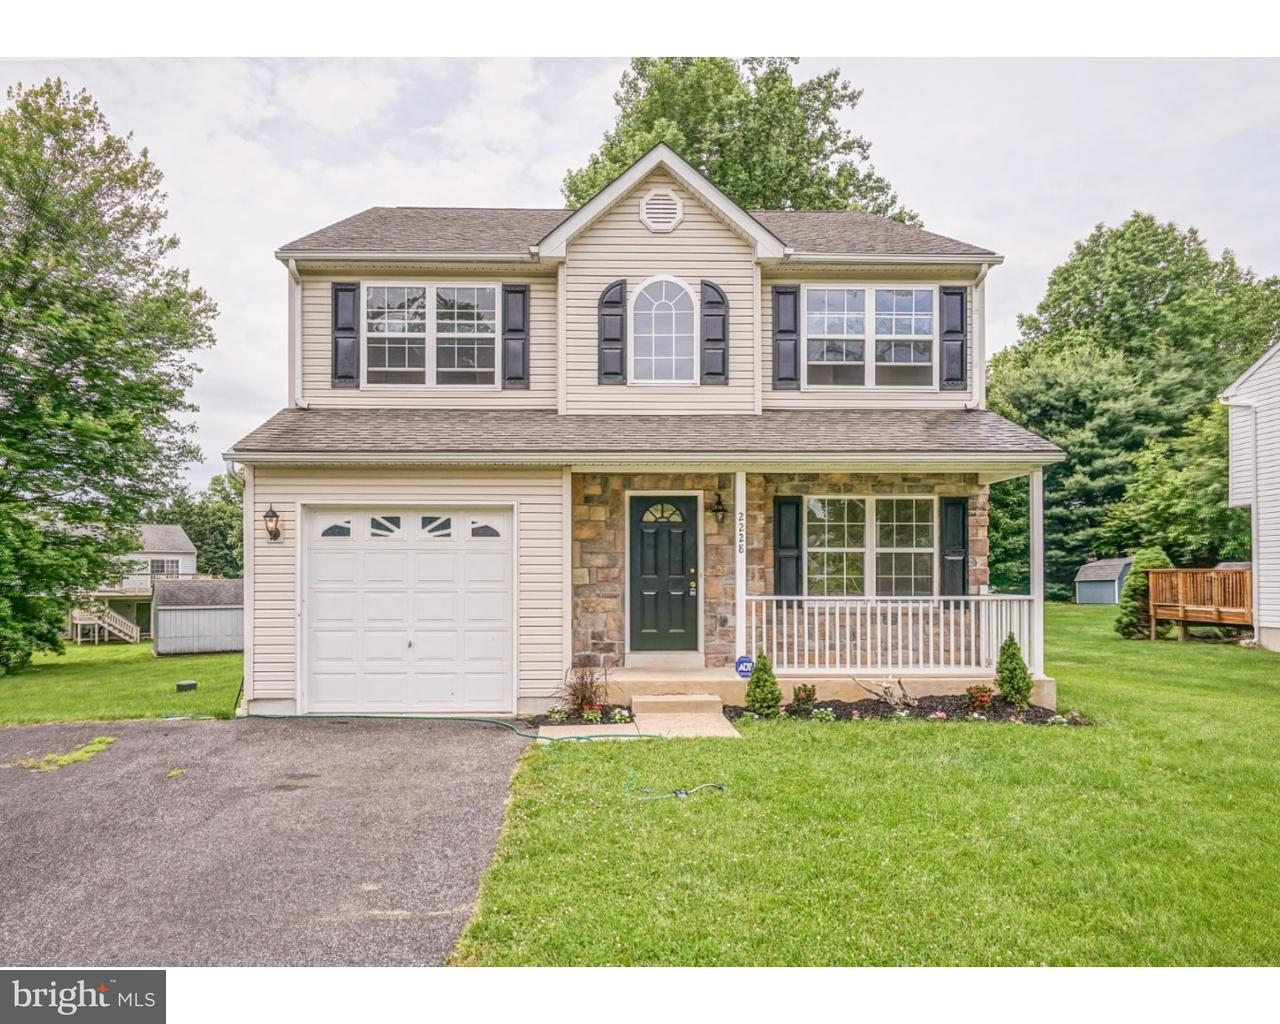 2228 FERNCROFT CIR, BOOTHWYN - Listed at $249,900, BOOTHWYN